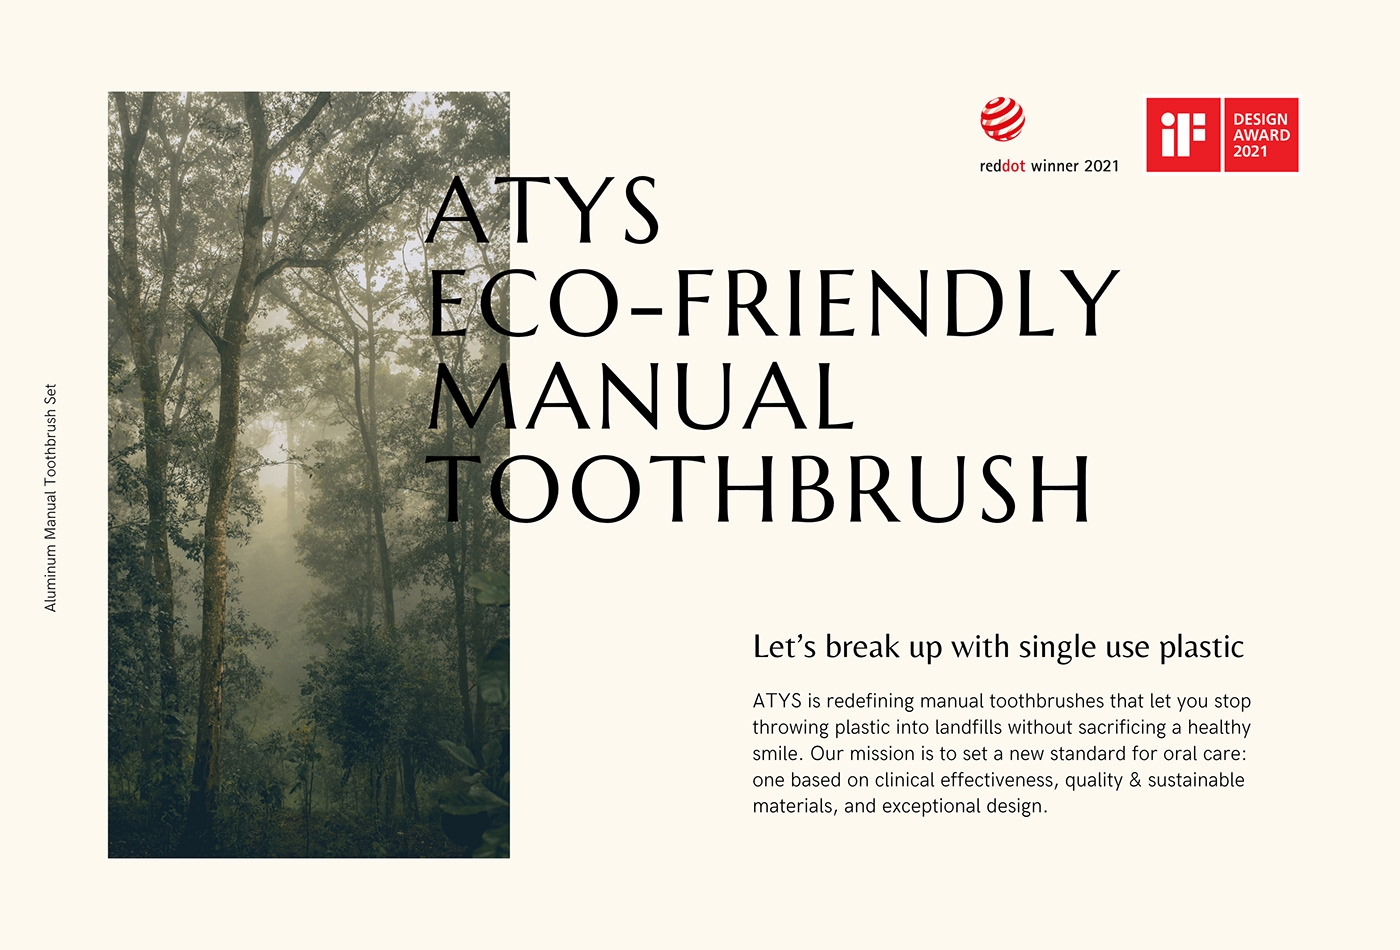 boston branding  eco-friendly lifestyle Packaging personal care product product design  Sustainability toothbrush